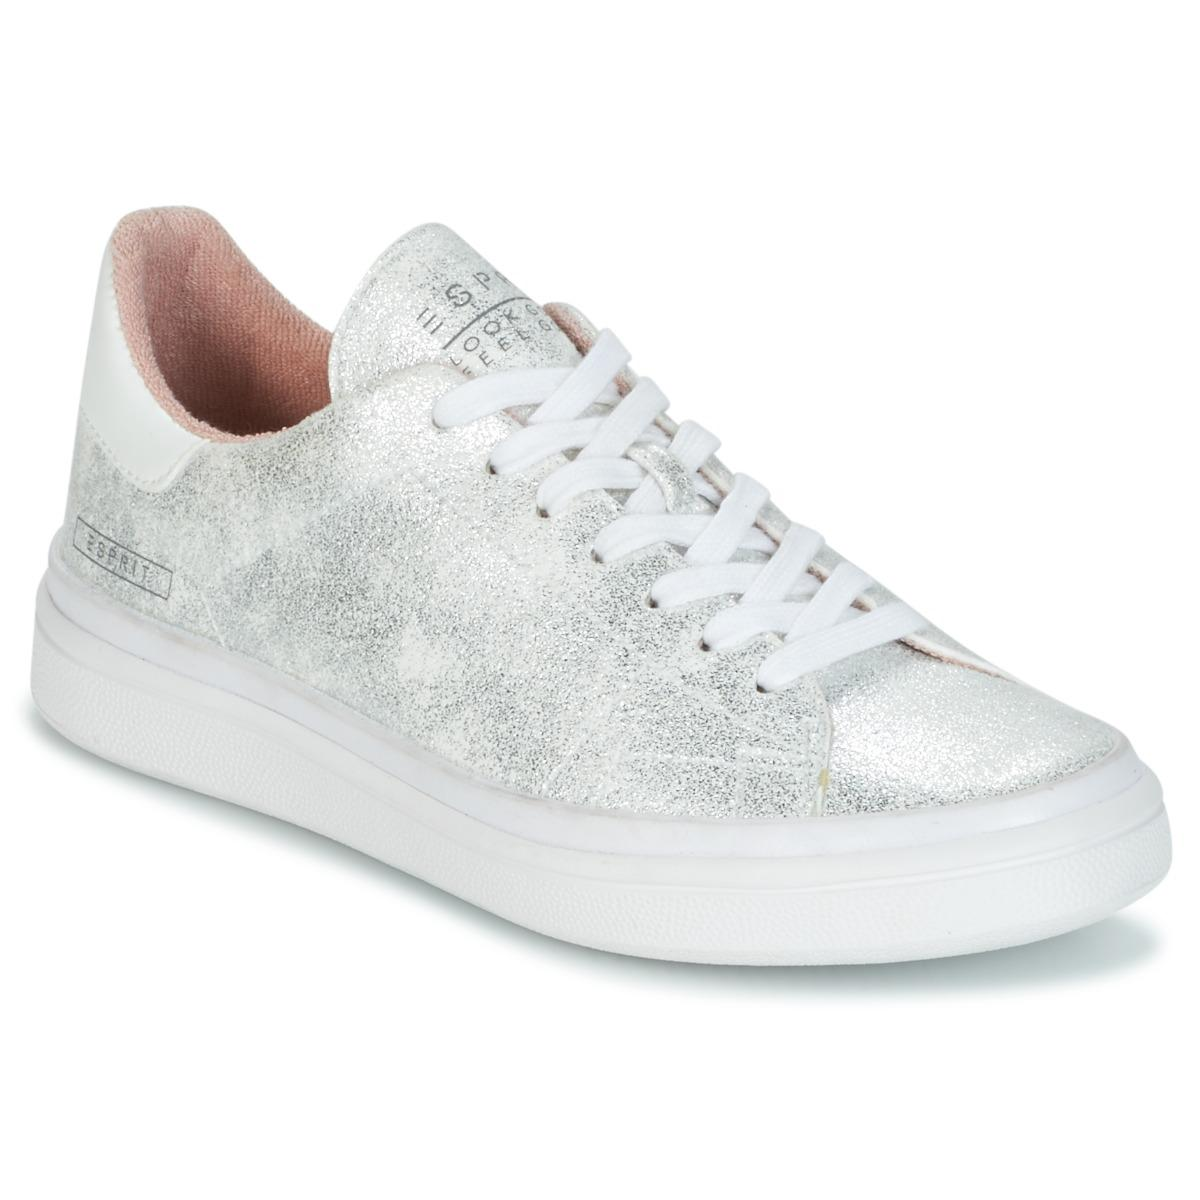 30e99c8f4d25 Esprit Gigi Lace Up Shoes (trainers) in Metallic - Lyst